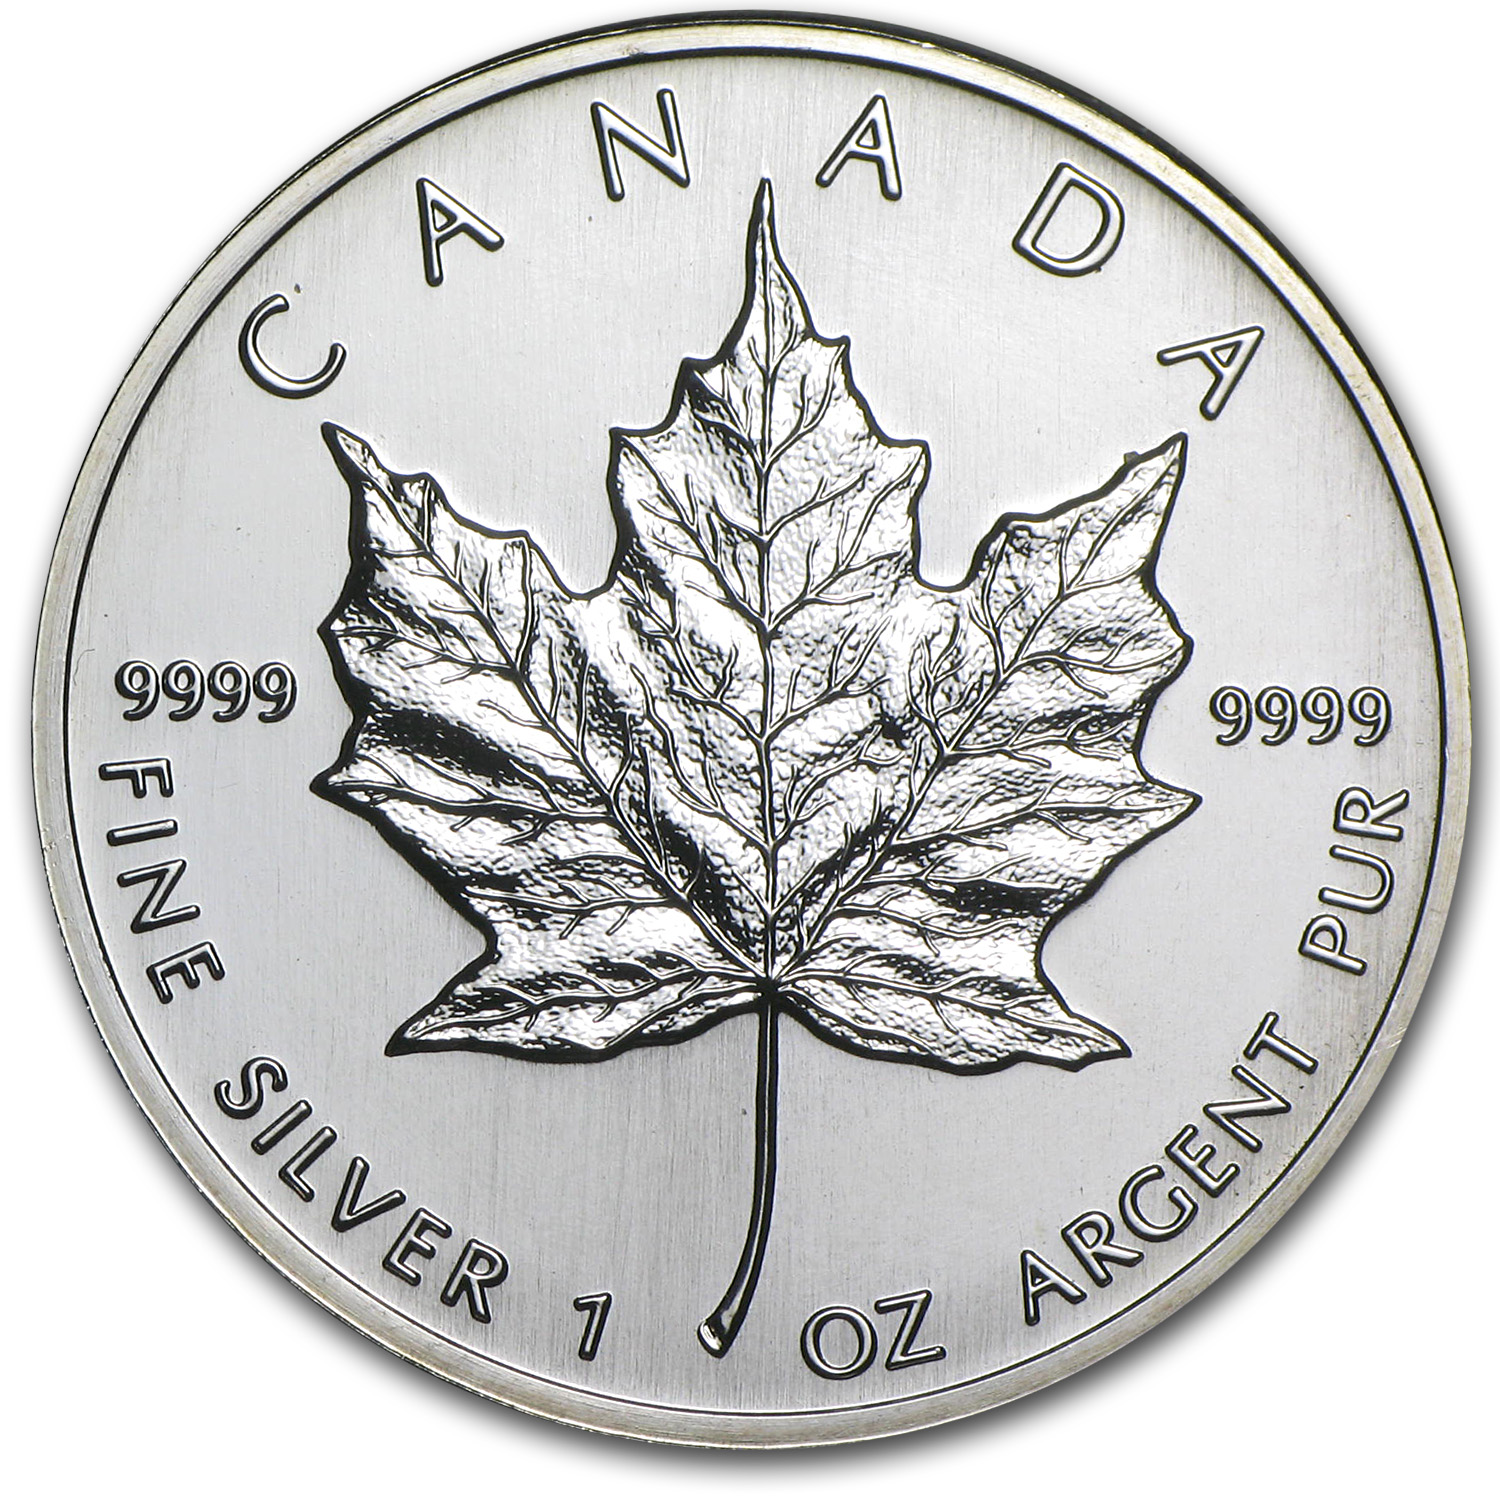 1995 1 oz Silver Canadian Maple Leaf BU